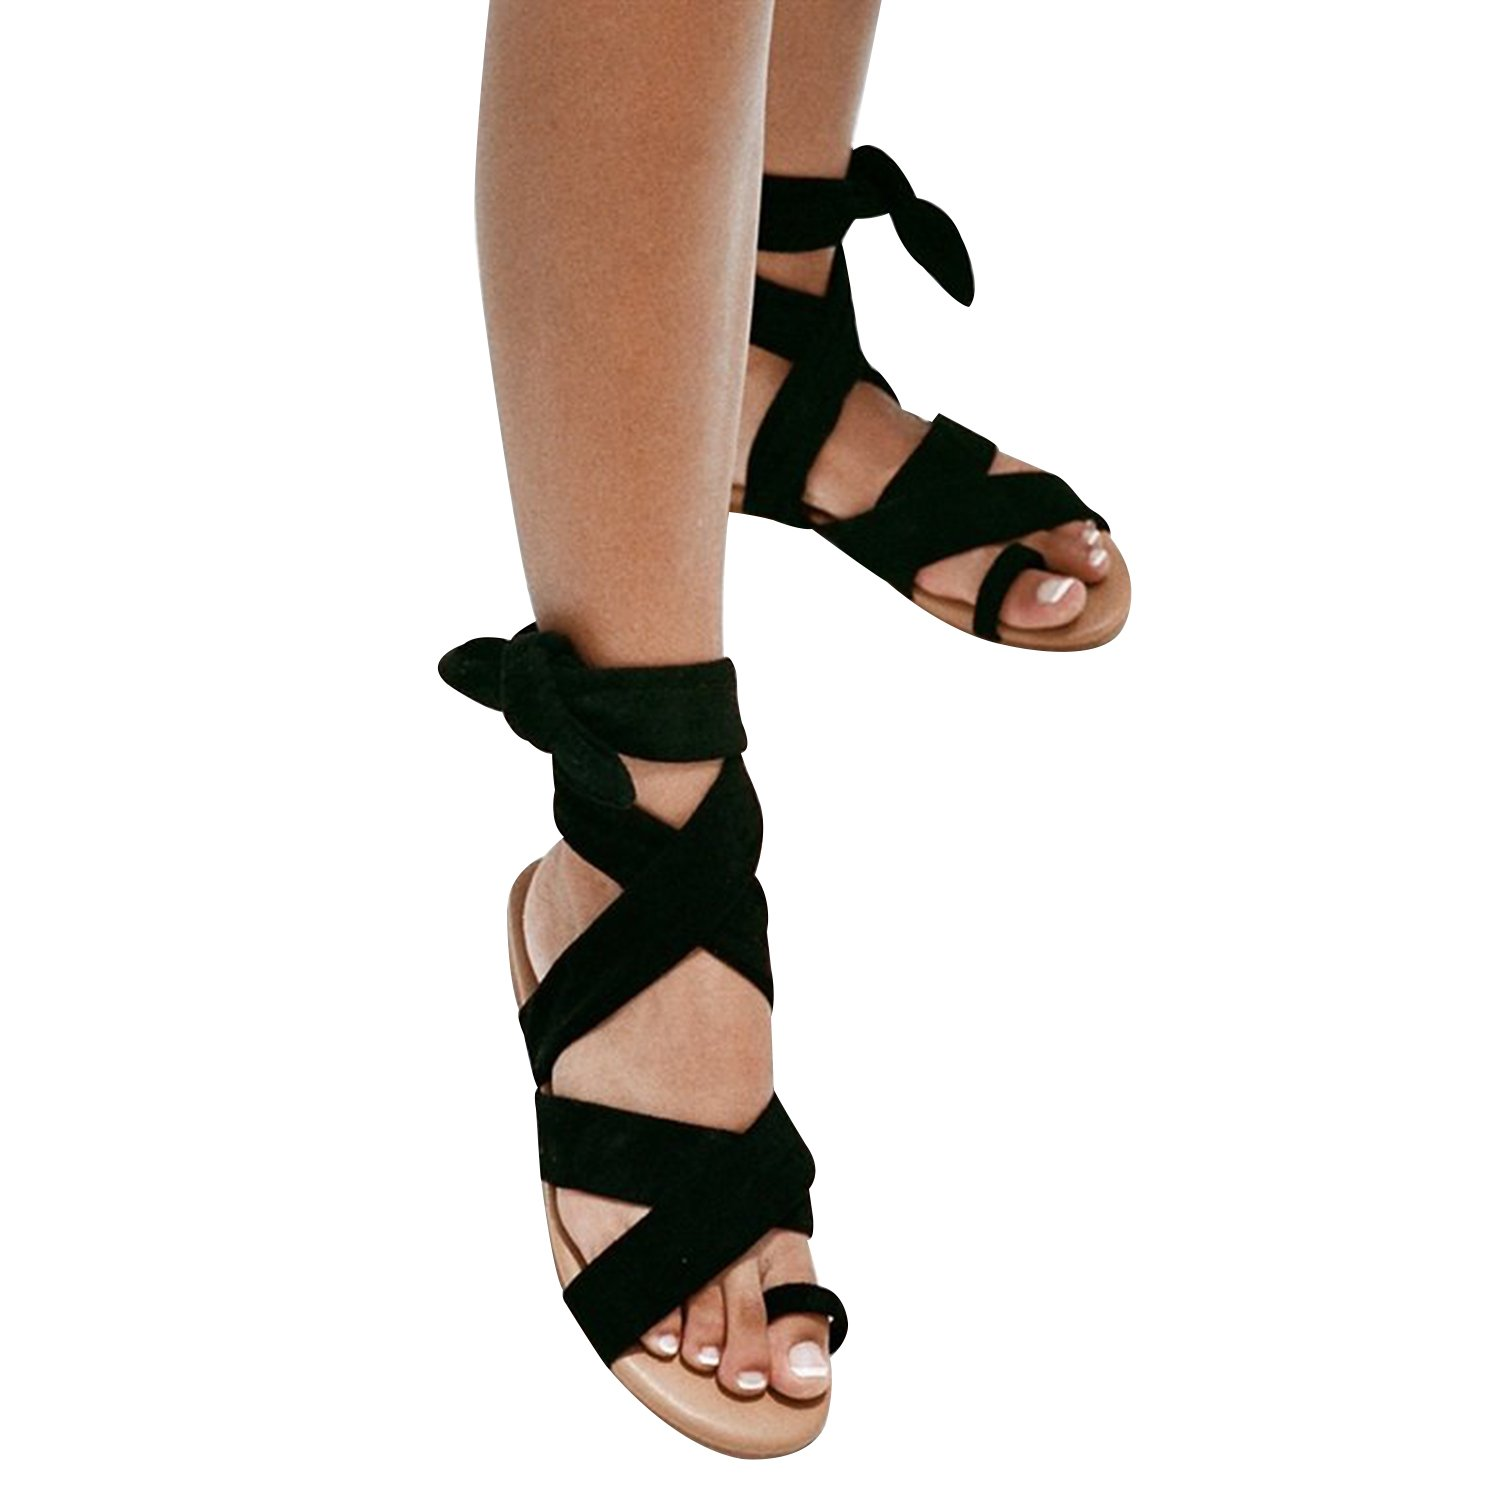 517a4b274a0 Soft cloth lace up strap. Boho white open toe cloth tie up bandage strappy  flat heel summer beach sandals for women. Cute and comfortable girls black  thong ...